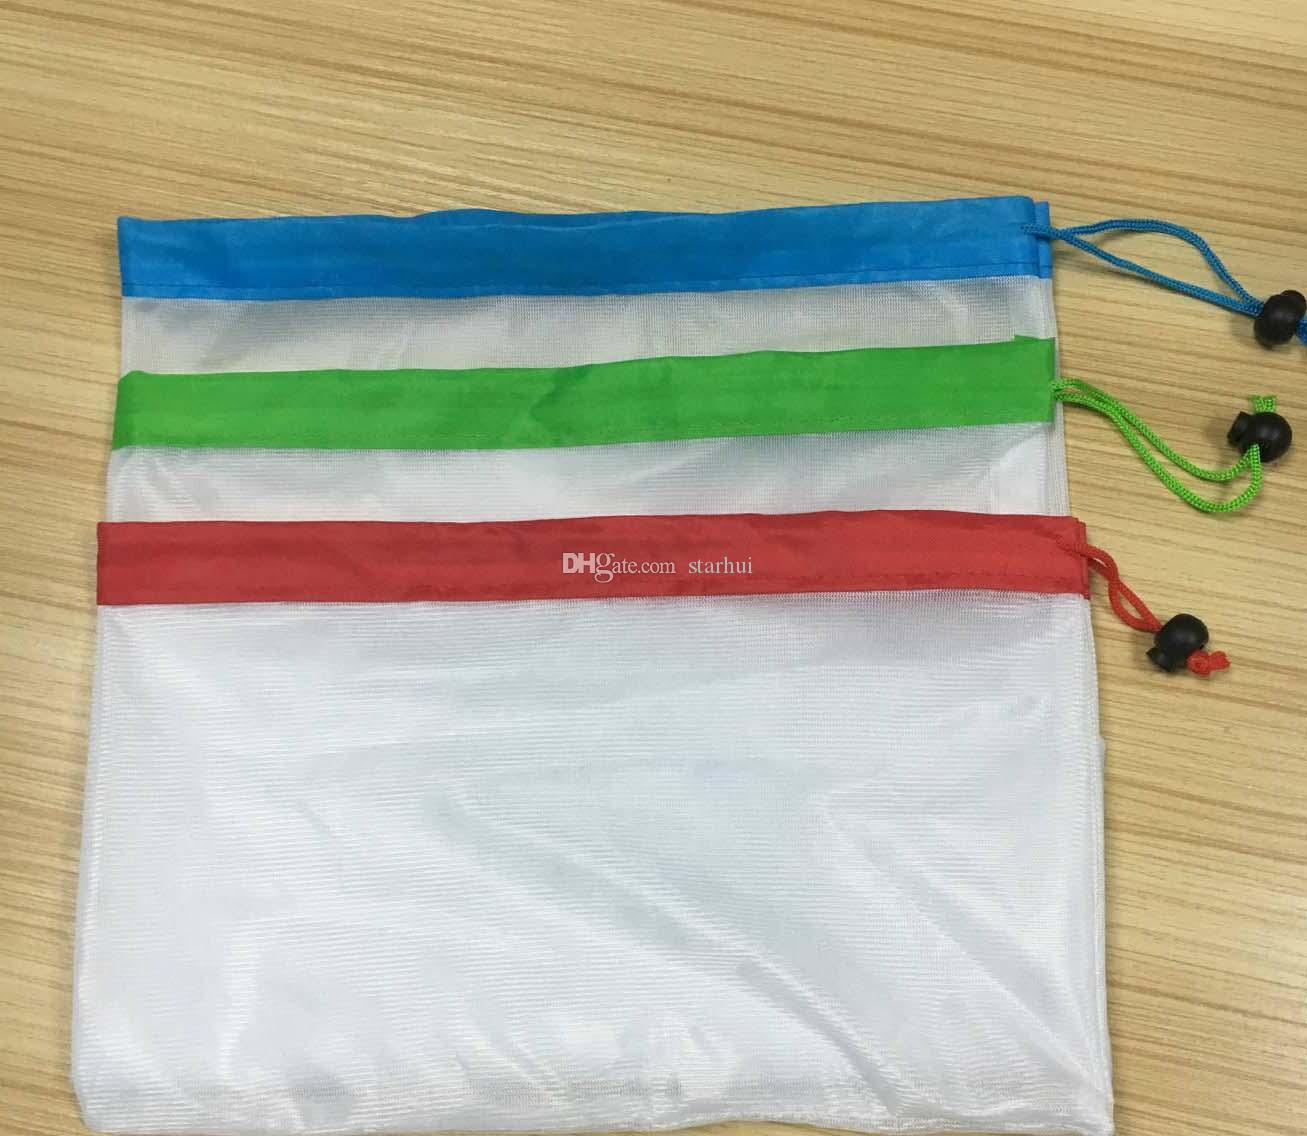 Resable Mesh Vegetable Fruit Bag For Washing Shopping Grocery Shopping Rope String Shoulder Bag Hand Totes Home Storage Pouch Bags WX9-562